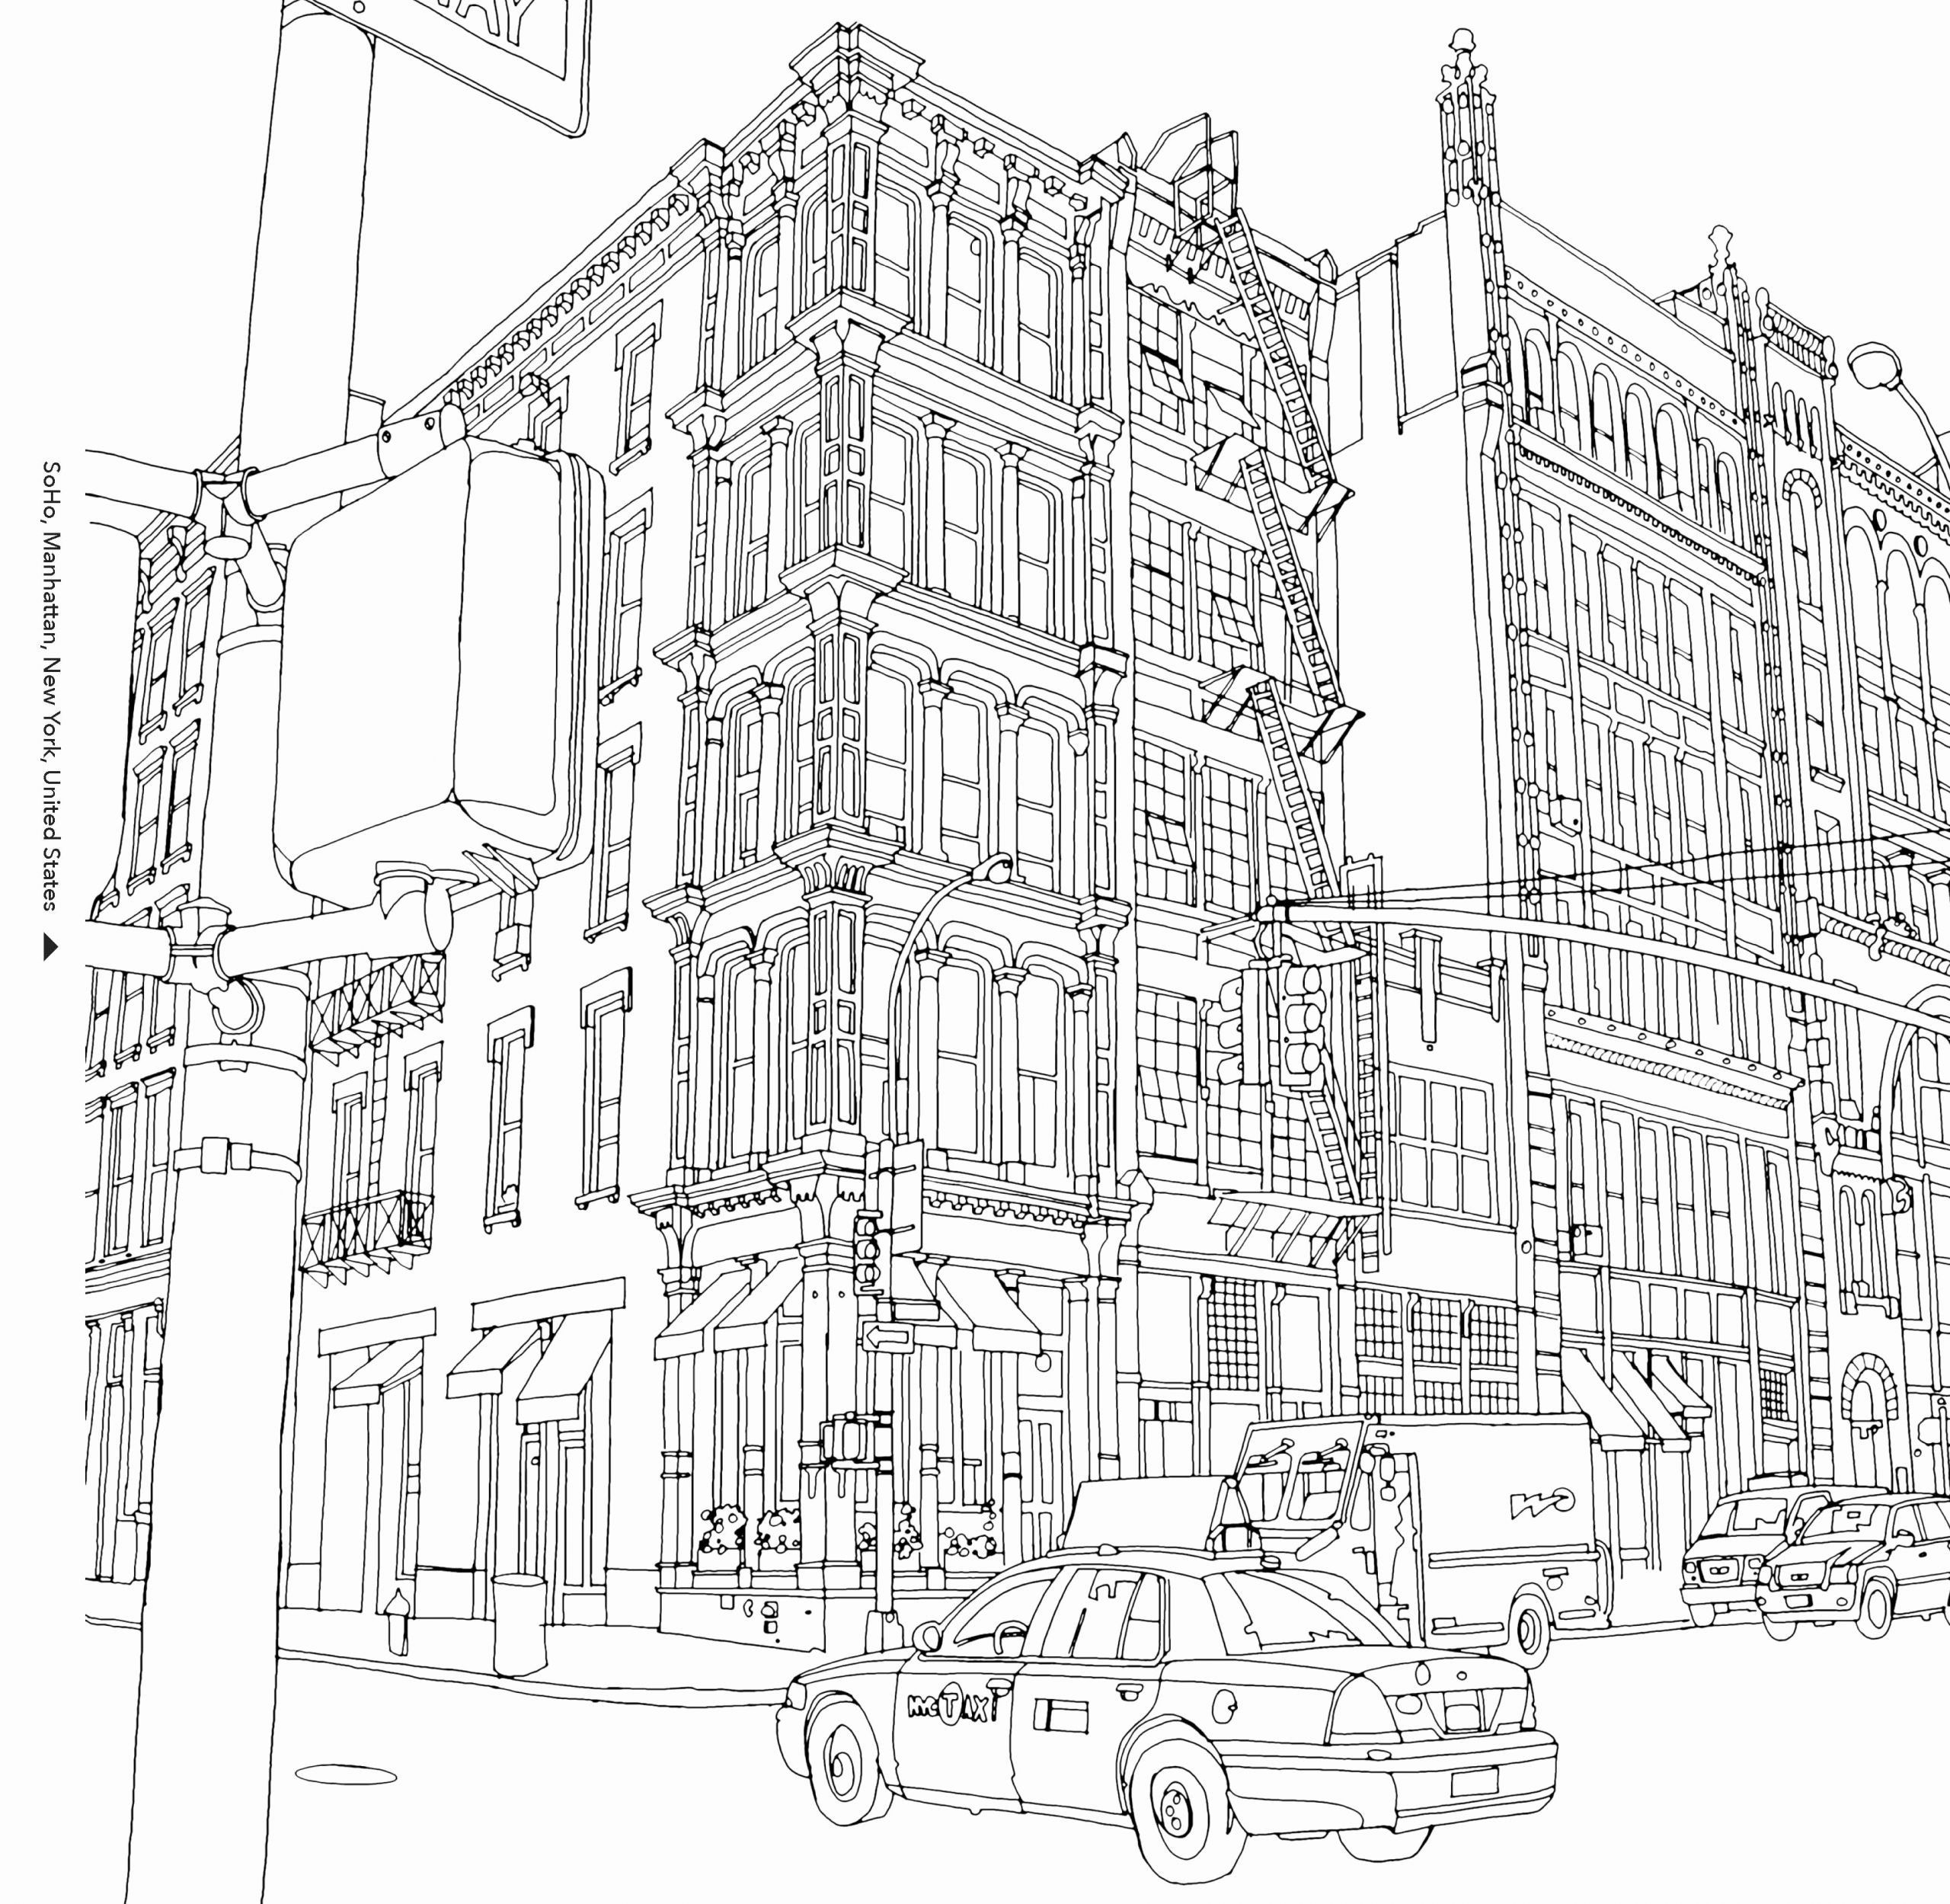 New Coloring Pages For Adults New The Surprising Popularity Of An Urban Themed Coloring Book In 2020 Coloring Books Coloring Pages Free Coloring Pages